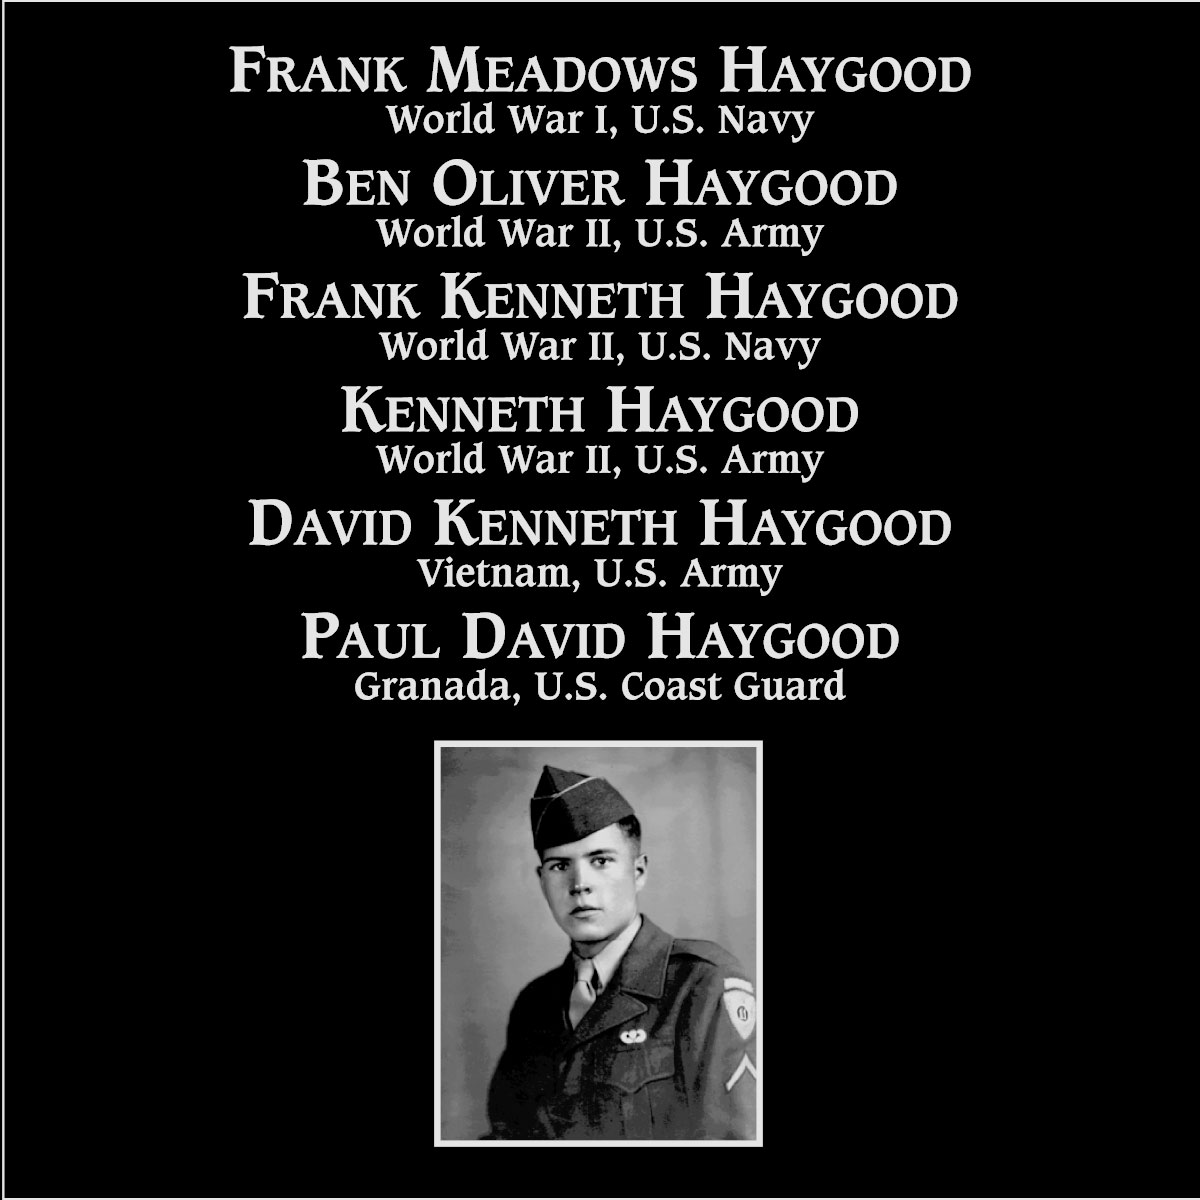 Paul David Haygood